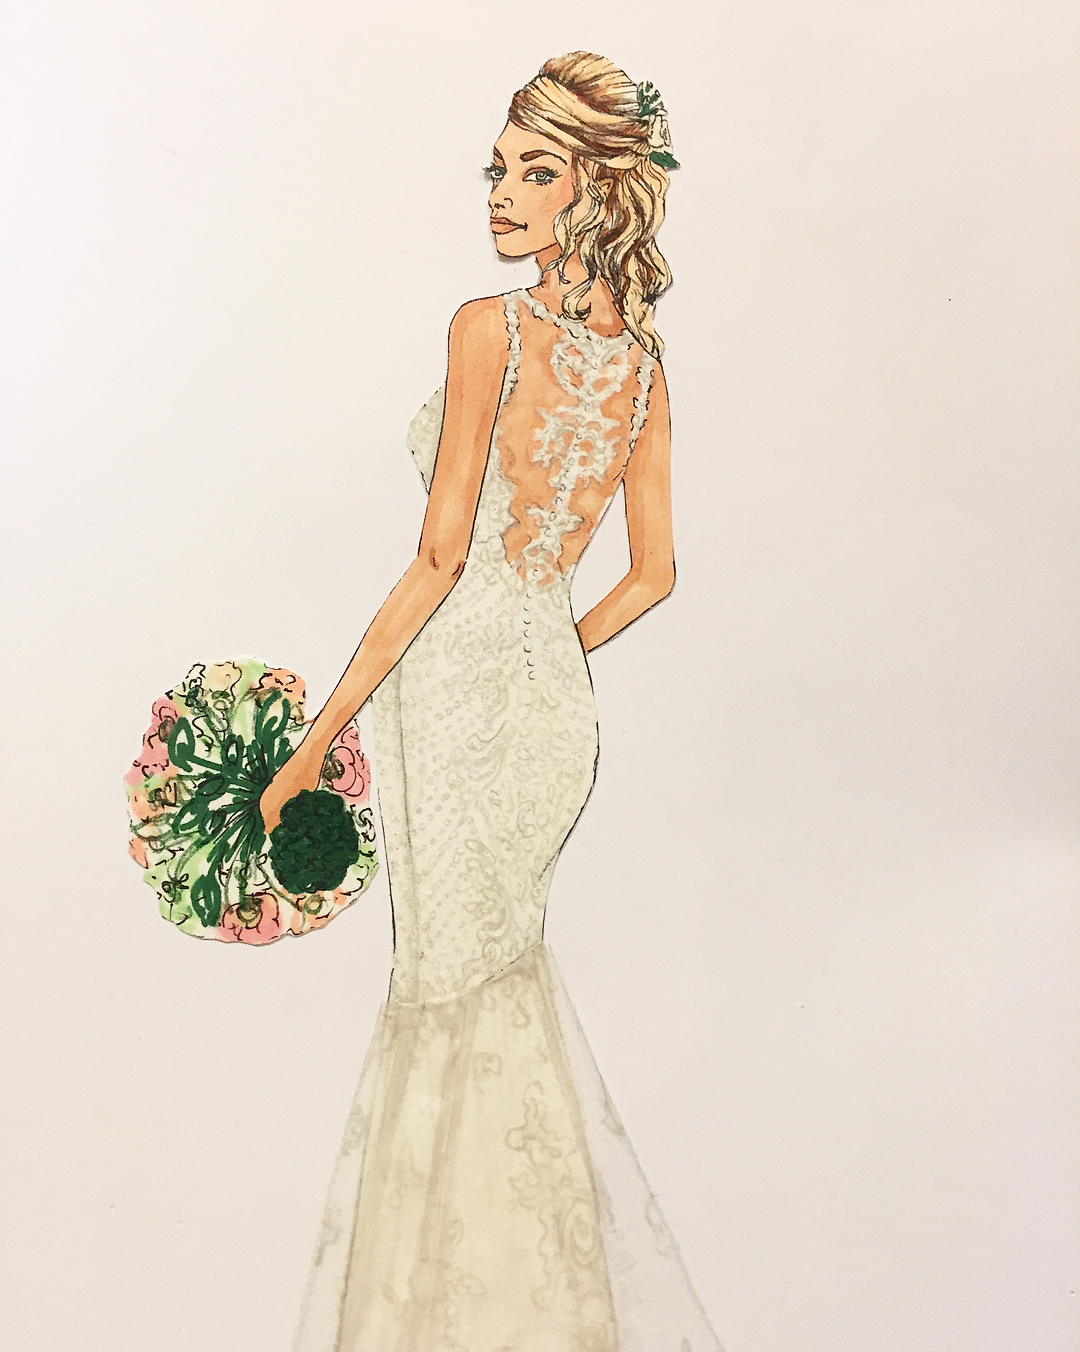 Commissioned bridal illustration